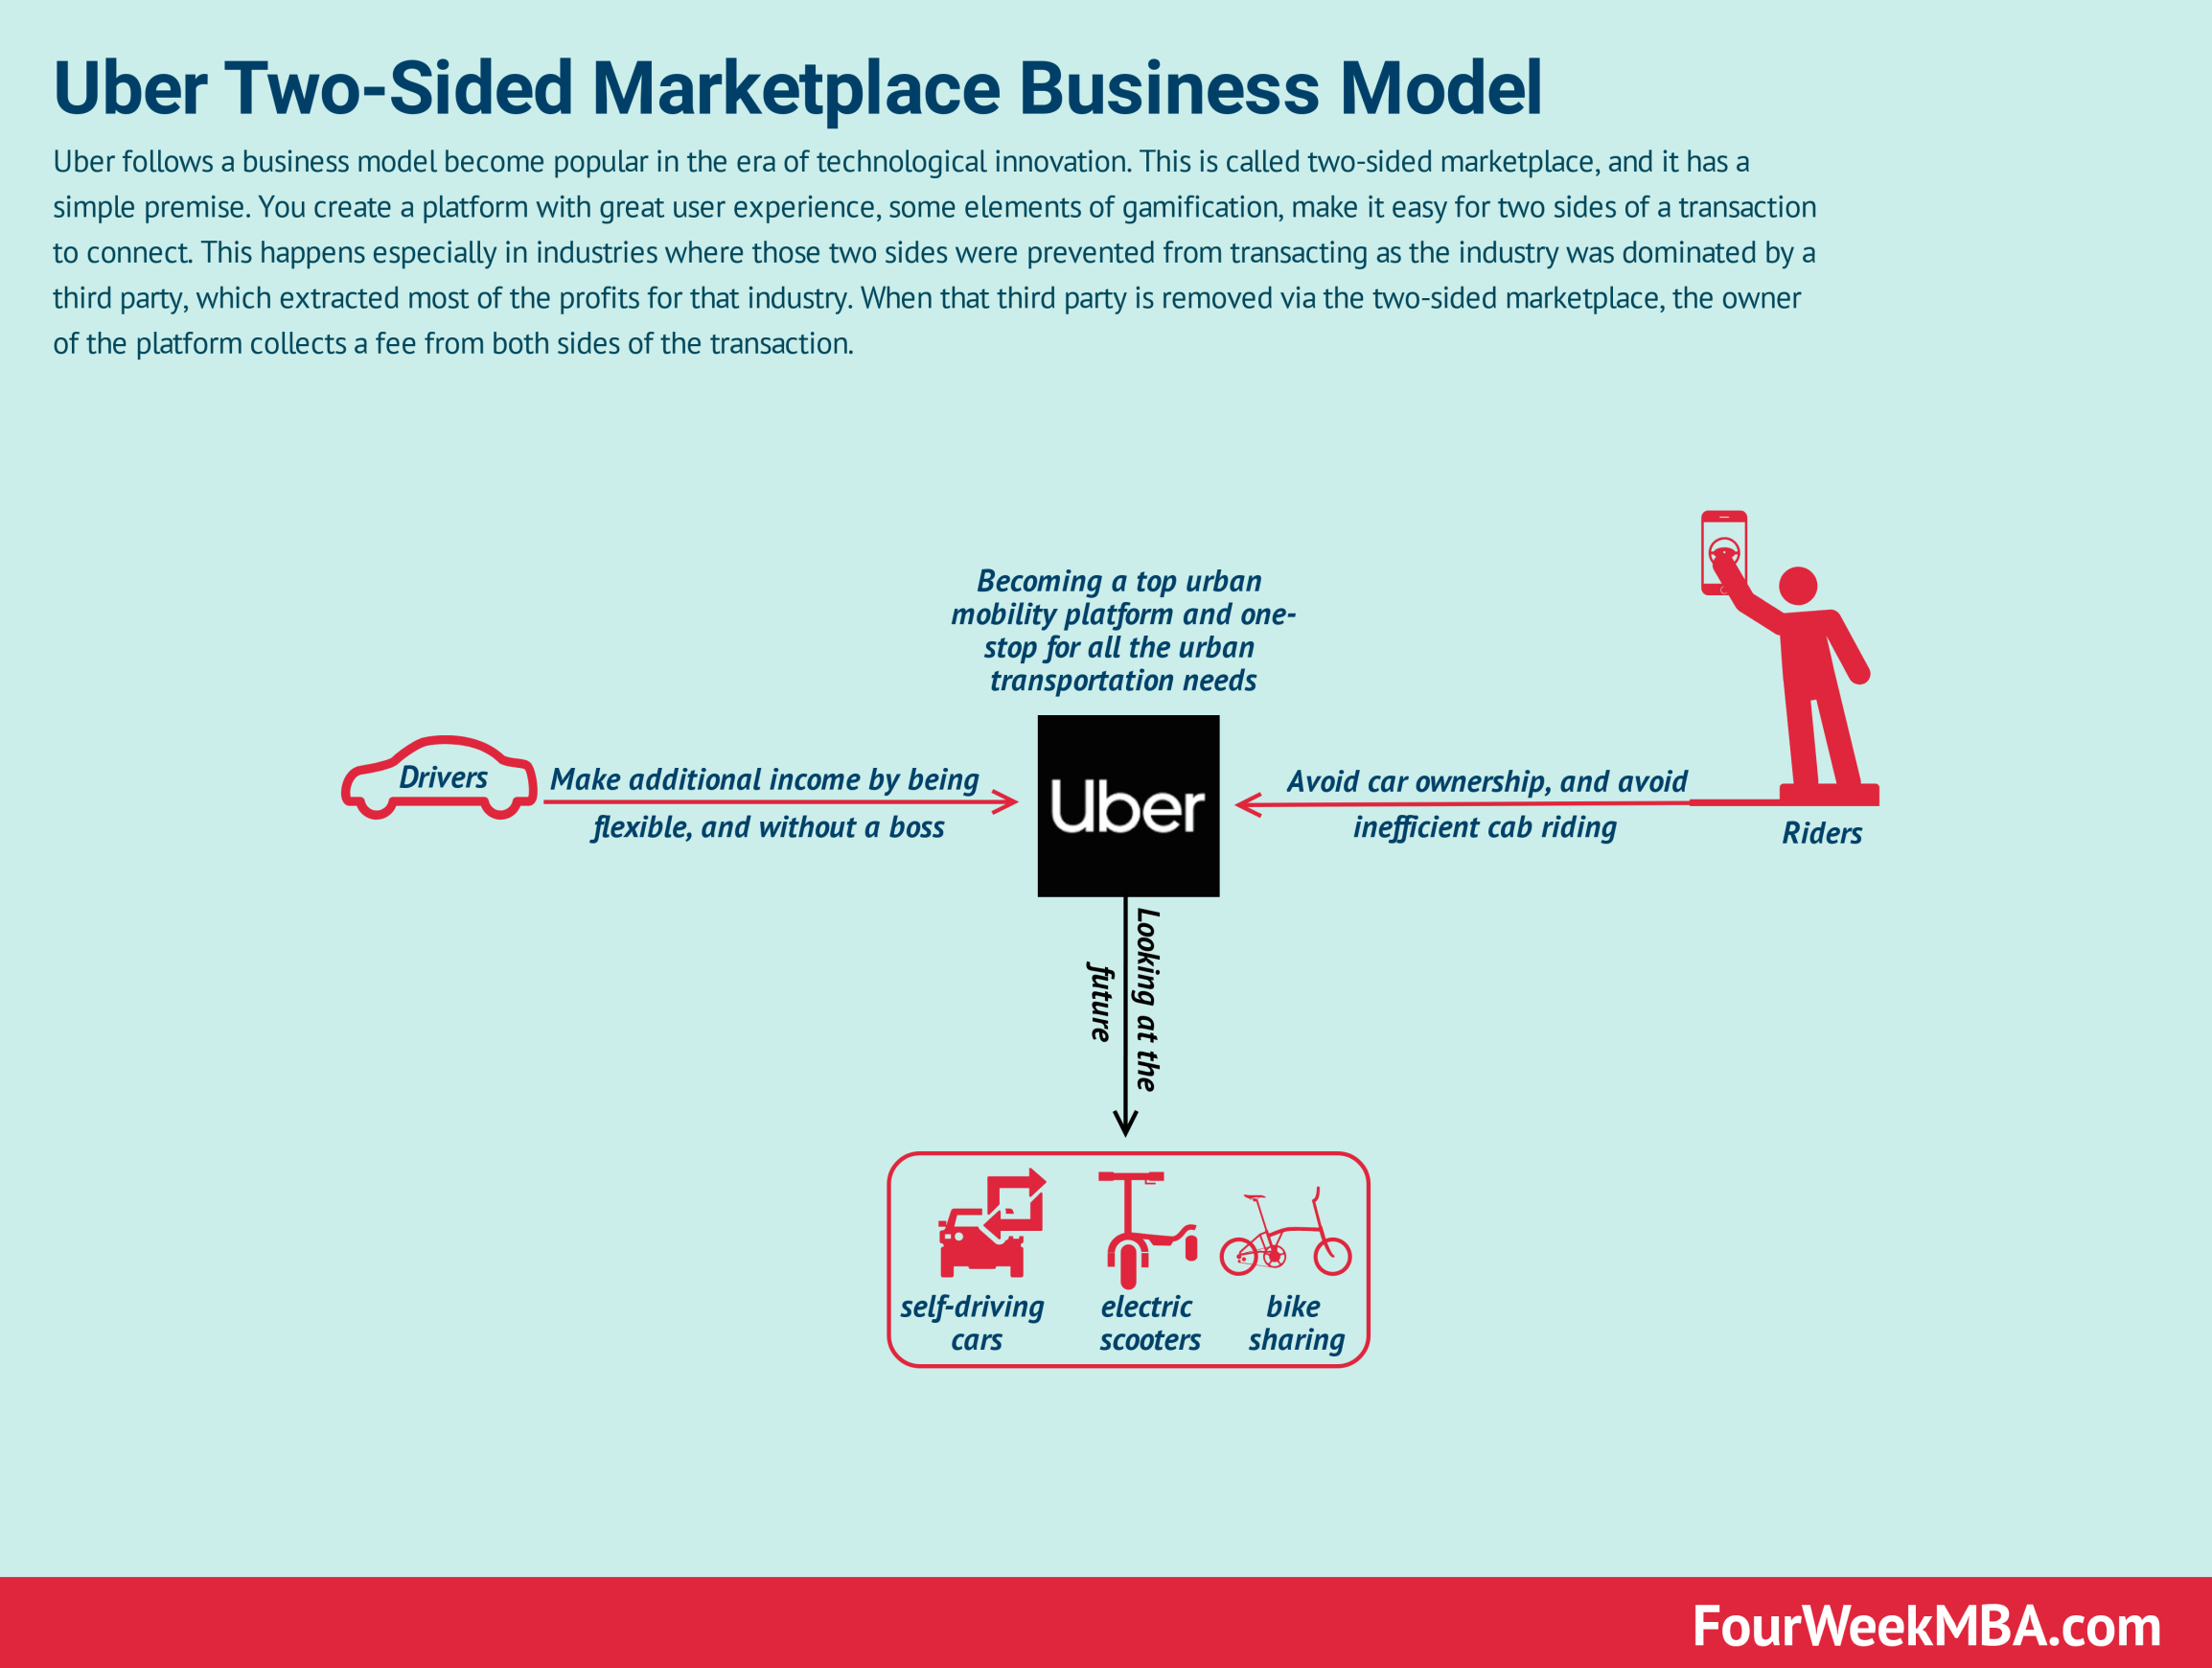 How Does Uber Make Money Uber Business Model In A Nutshell Fourweekmba Uber Business Digital Business Business